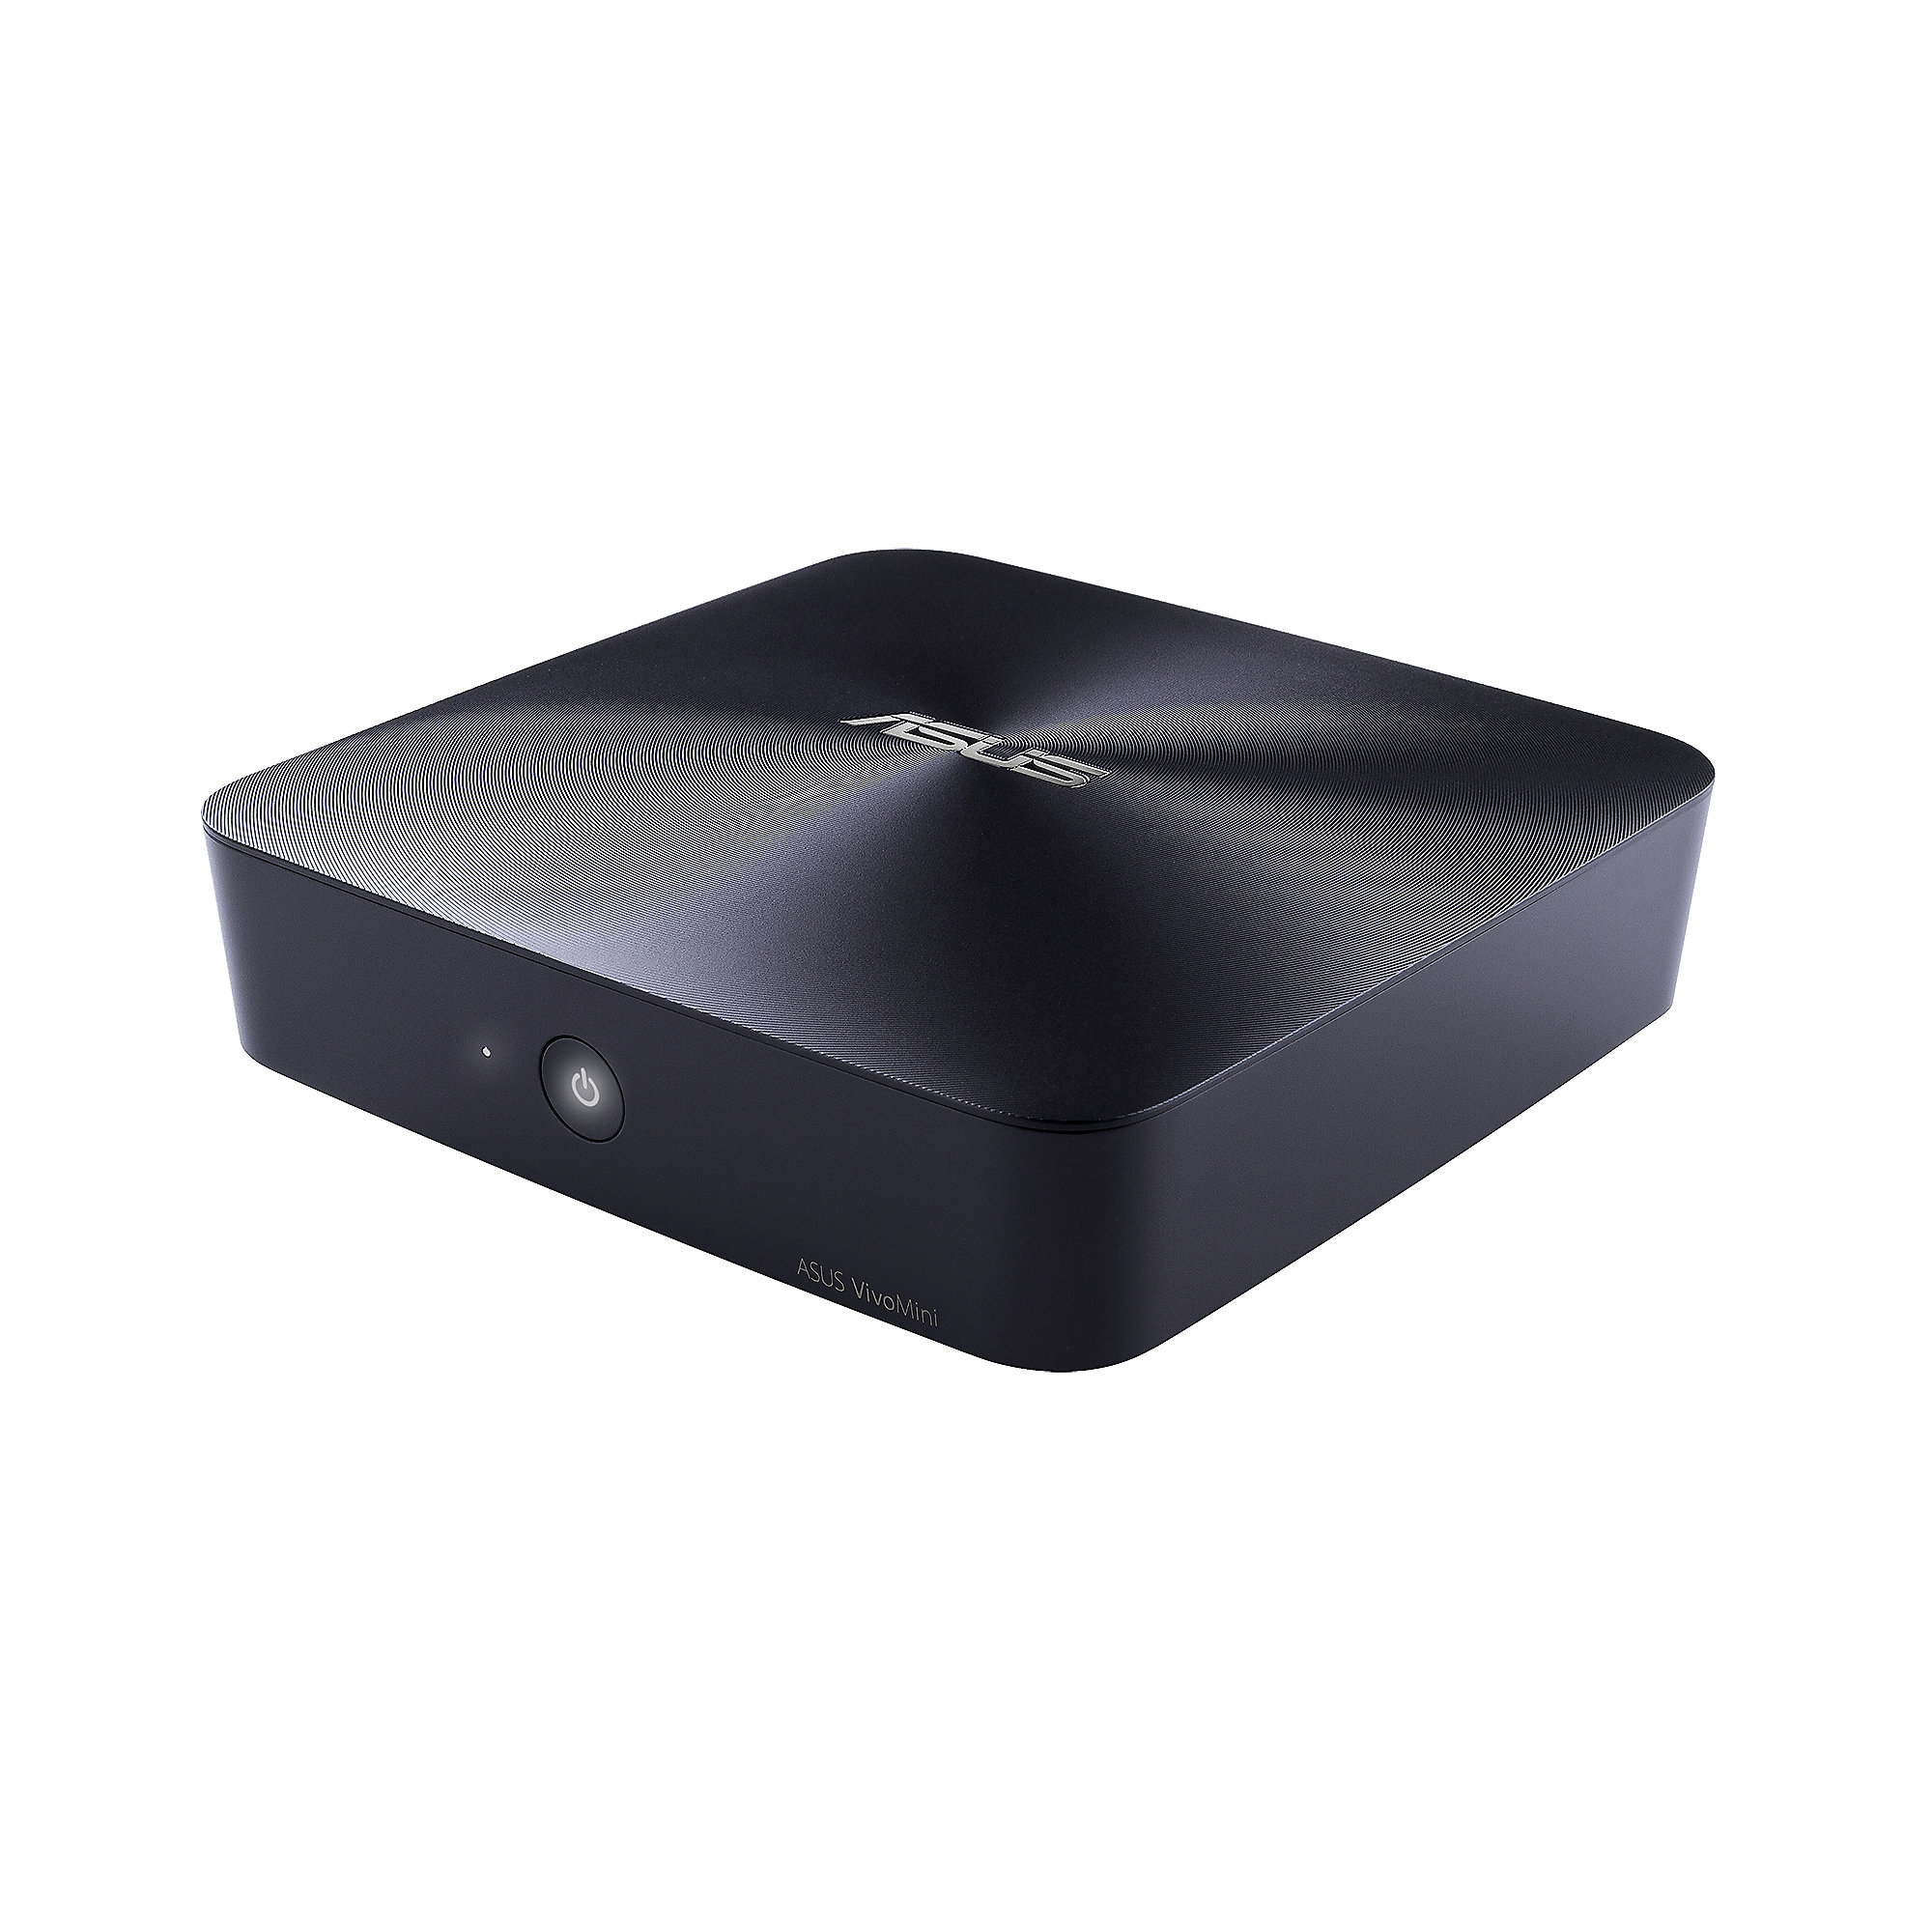 ASUS VIVOMini UN45H-DM133M - N3000 2GB DDR3/256GB SSD Intel-HD Midnight Blue